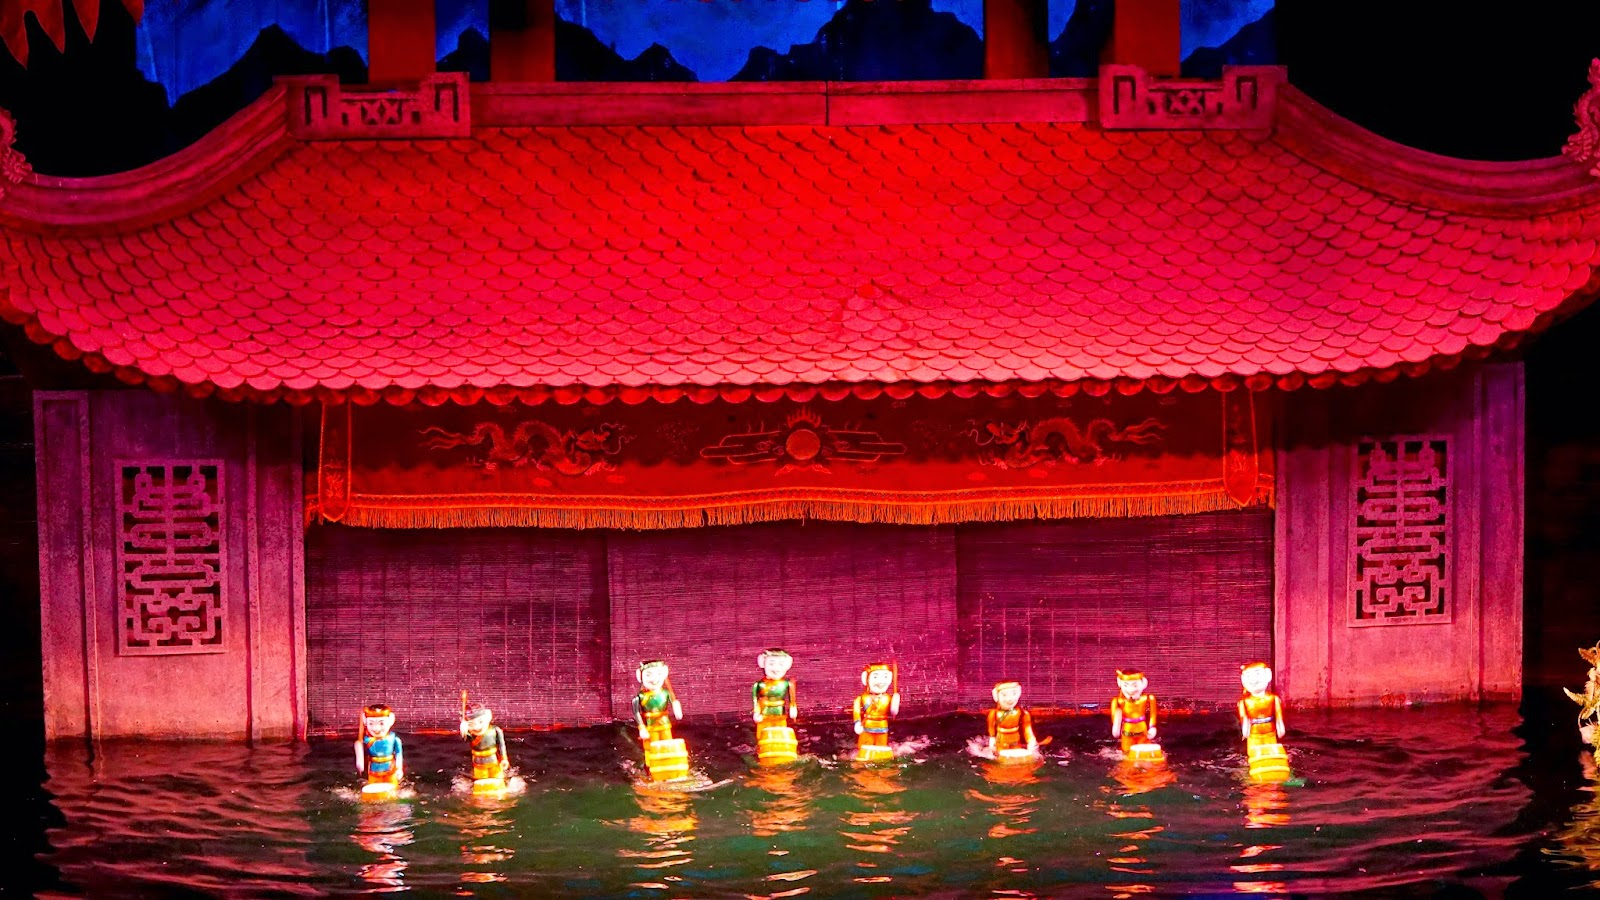 There are plenty of water puppet shows in Vietnam, but Thang Long is supposedly one of the more famous ones. Ticket prices vary from 60,000 dong (back row seat) to 100,000 dong (front row seat). If you want a bit more comfort, pay a bit more for front row seats, you'll thank me later